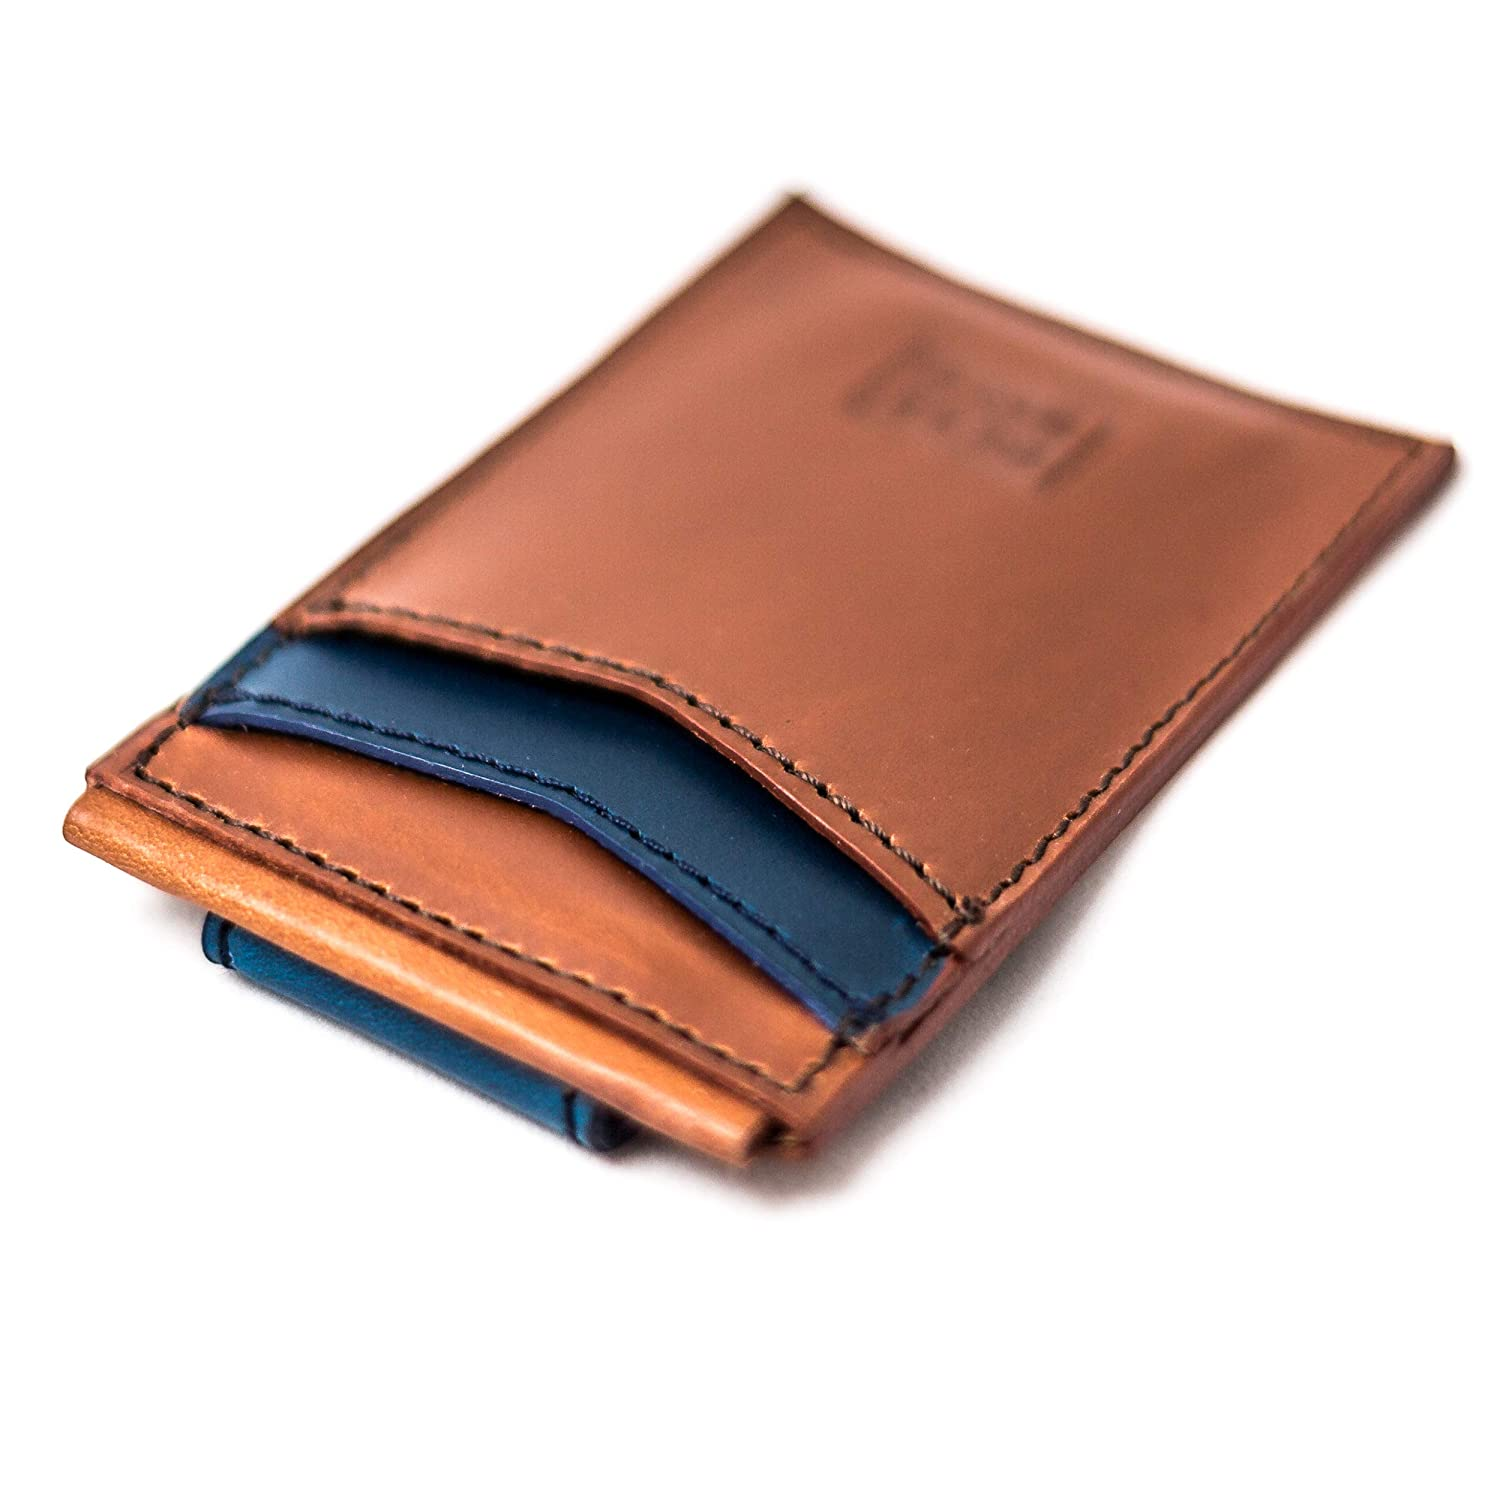 2in x 2in Top Grain Premium Leather Leather Wallet Magnetic Card Case BestSelf Co Money Clip Ultra Slim Design